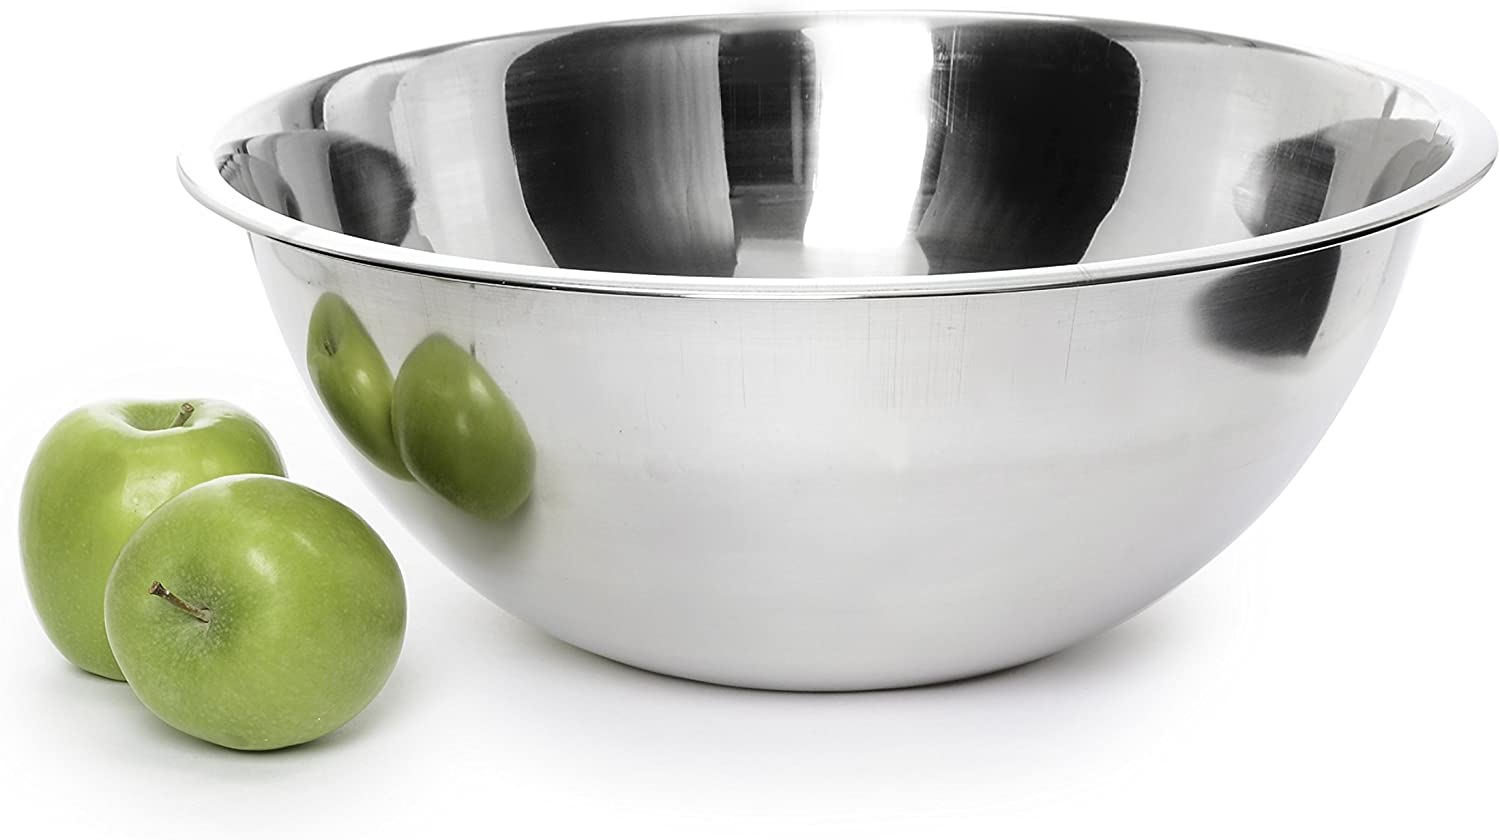 YBM HOME Stainless Steel Mixing Bowl for Cooking Baking, Mixing and Serving, Polished Mirror Nesting Metal Bowls Commercial Grade, 5 Quart, 1175